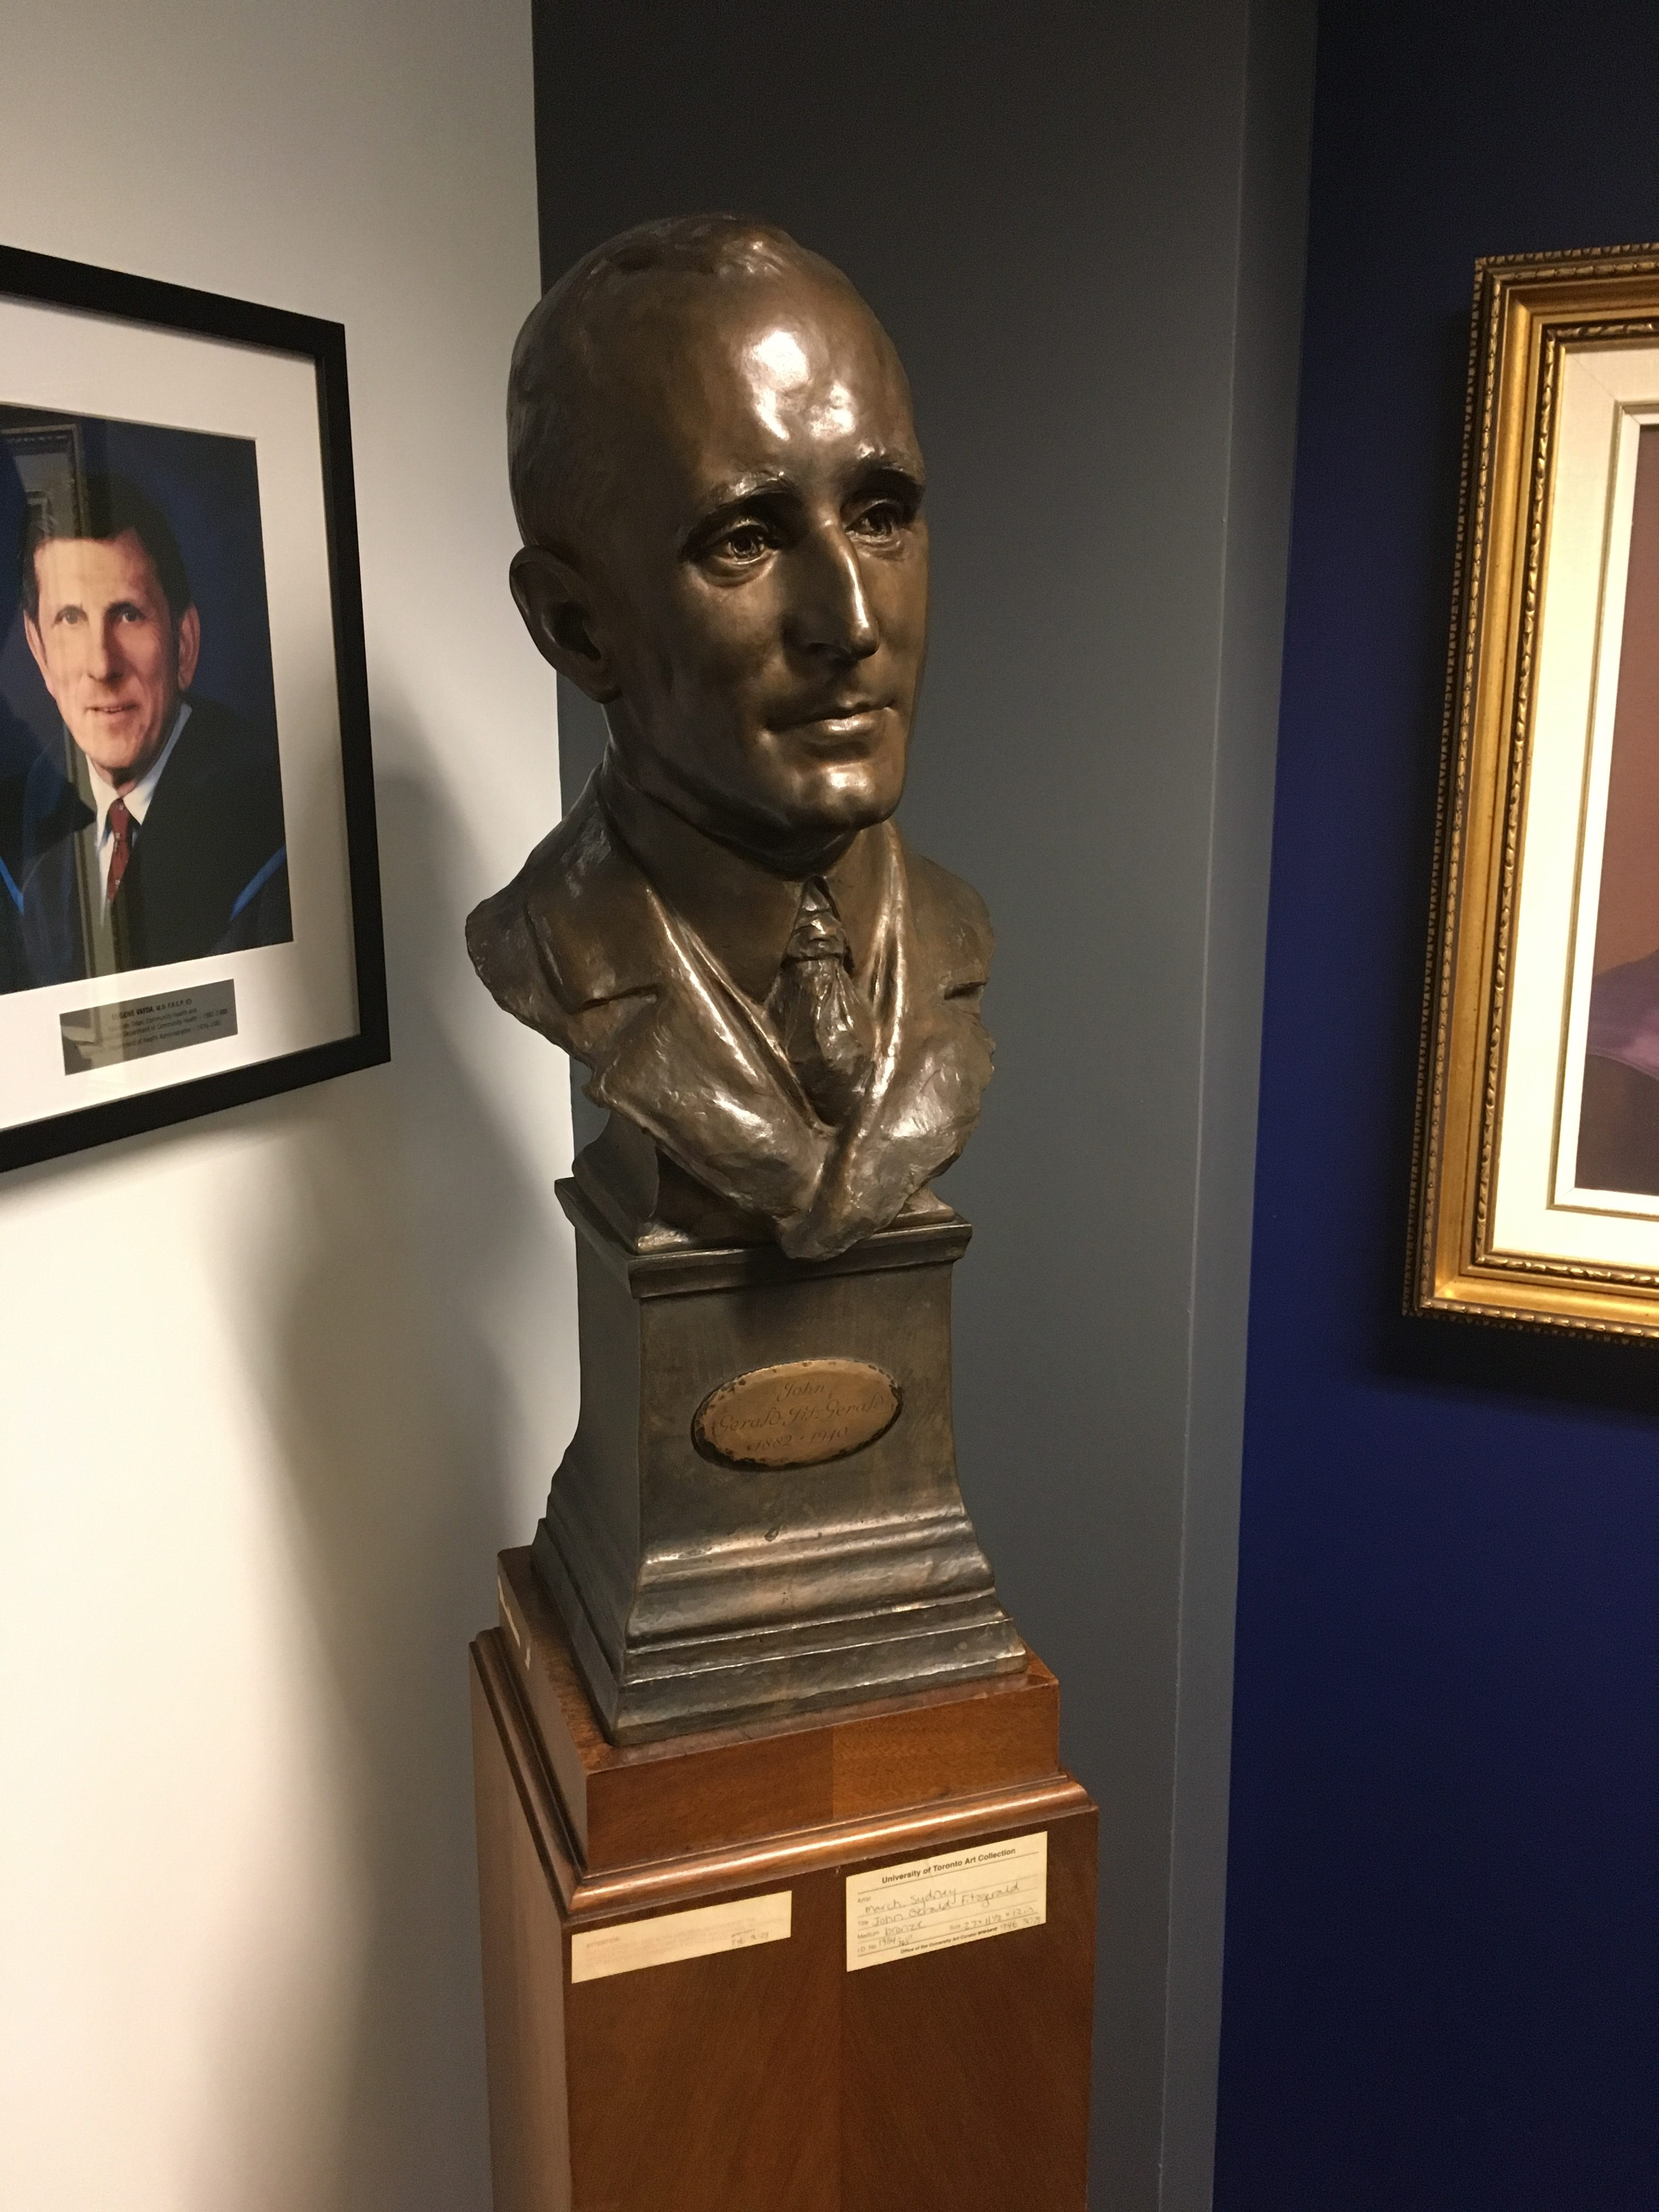 The bronze bust of Dr. John G. FitzGerald in the main 6th floor lobby of the Dalla Lana School of Public Health (DLSPH) has an interesting story. In August 1925, FitzGerald had set sail for Europe with Dr. Frederick Banting, who was bound for Stockholm to receive his Nobel Prize for the discovery of insulin. Somewhere between Labrador and Newfoundland, Banting set up an easel on deck to paint an iceberg when he met British sculptors, Sydney and Vernon March, famous for their bronze bust portraits. During the trip, FitzGerald commissioned Sydney March to create a bronze bust of himself for the library of the new School of Hygiene building. The bust was completed for the opening of the Hygiene Building in June 1927, and remained there until it was moved across the street to the DLSPH lobby 91 years later.  On his death in June 1940, FitzGerald's ashes were placed inside the bust, but on the death of his wife, Edna, in 1958, his ashes were then interred together with hers at Mt. Pleasant Cemetery.